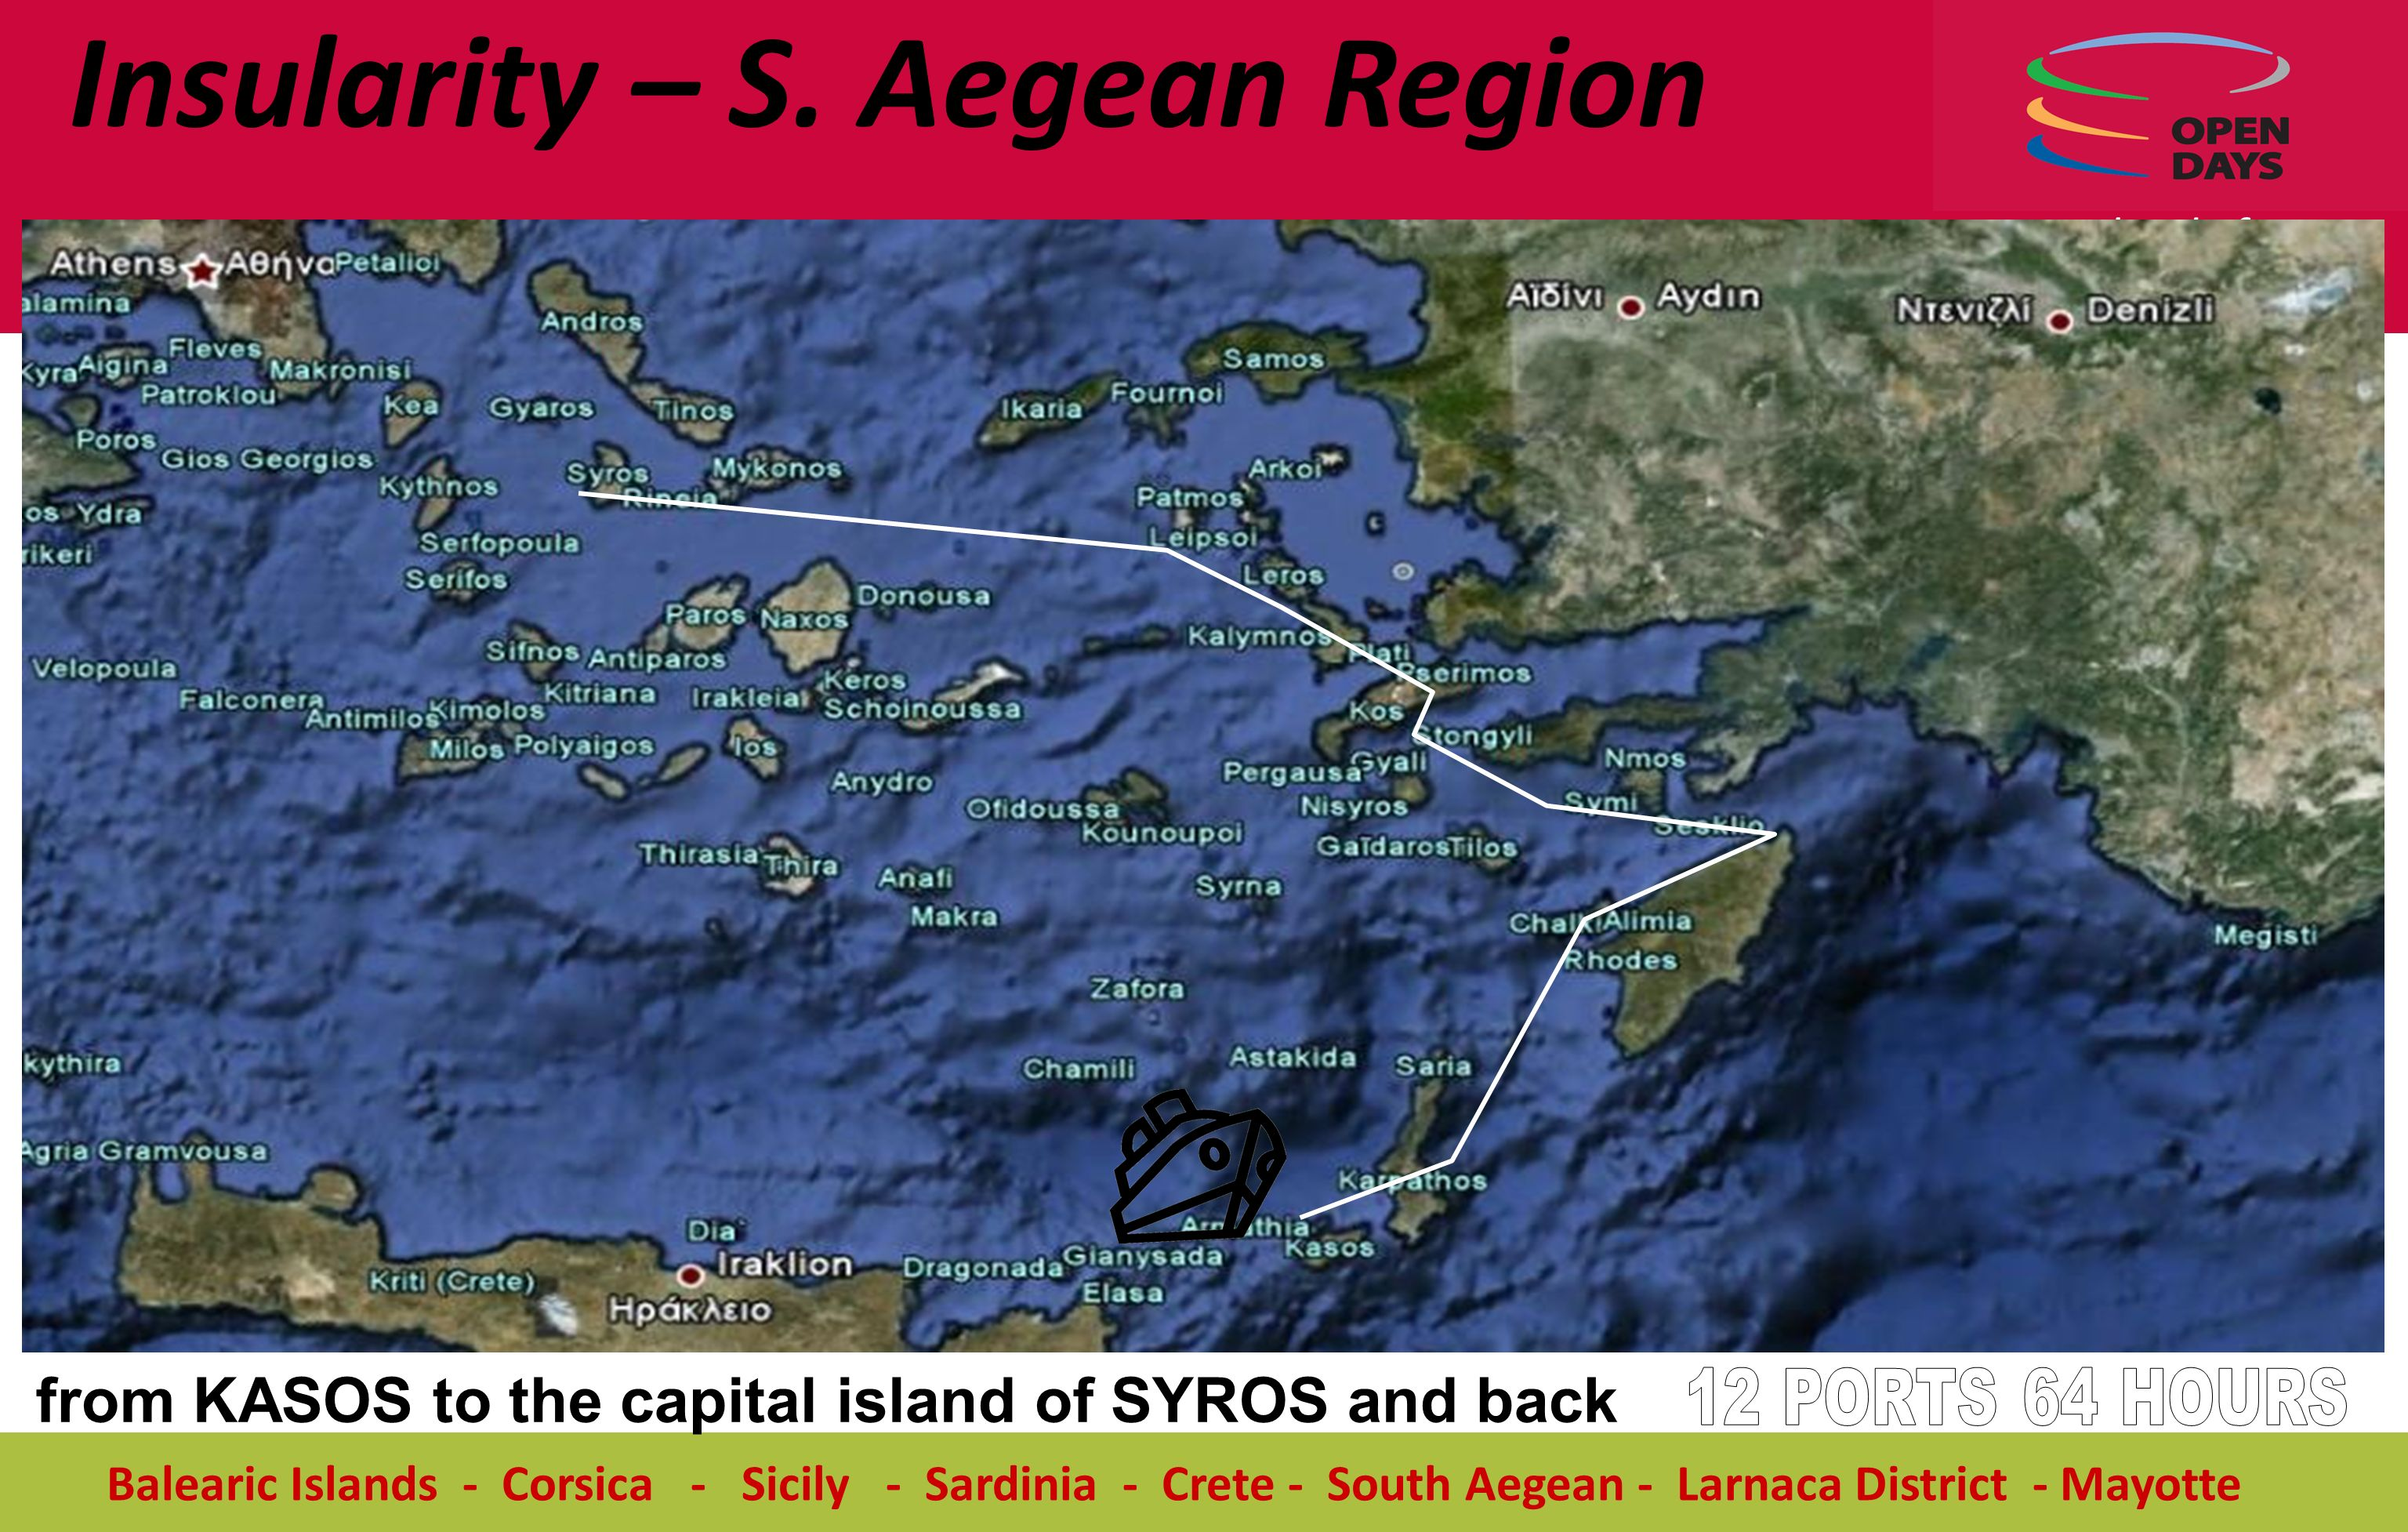 Islands for equal chances Balearic Islands - Corsica - Sicily - Sardinia - Crete - South Aegean - Larnaca District - Mayotte from KASOS to the capital island of SYROS and back Insularity – S.